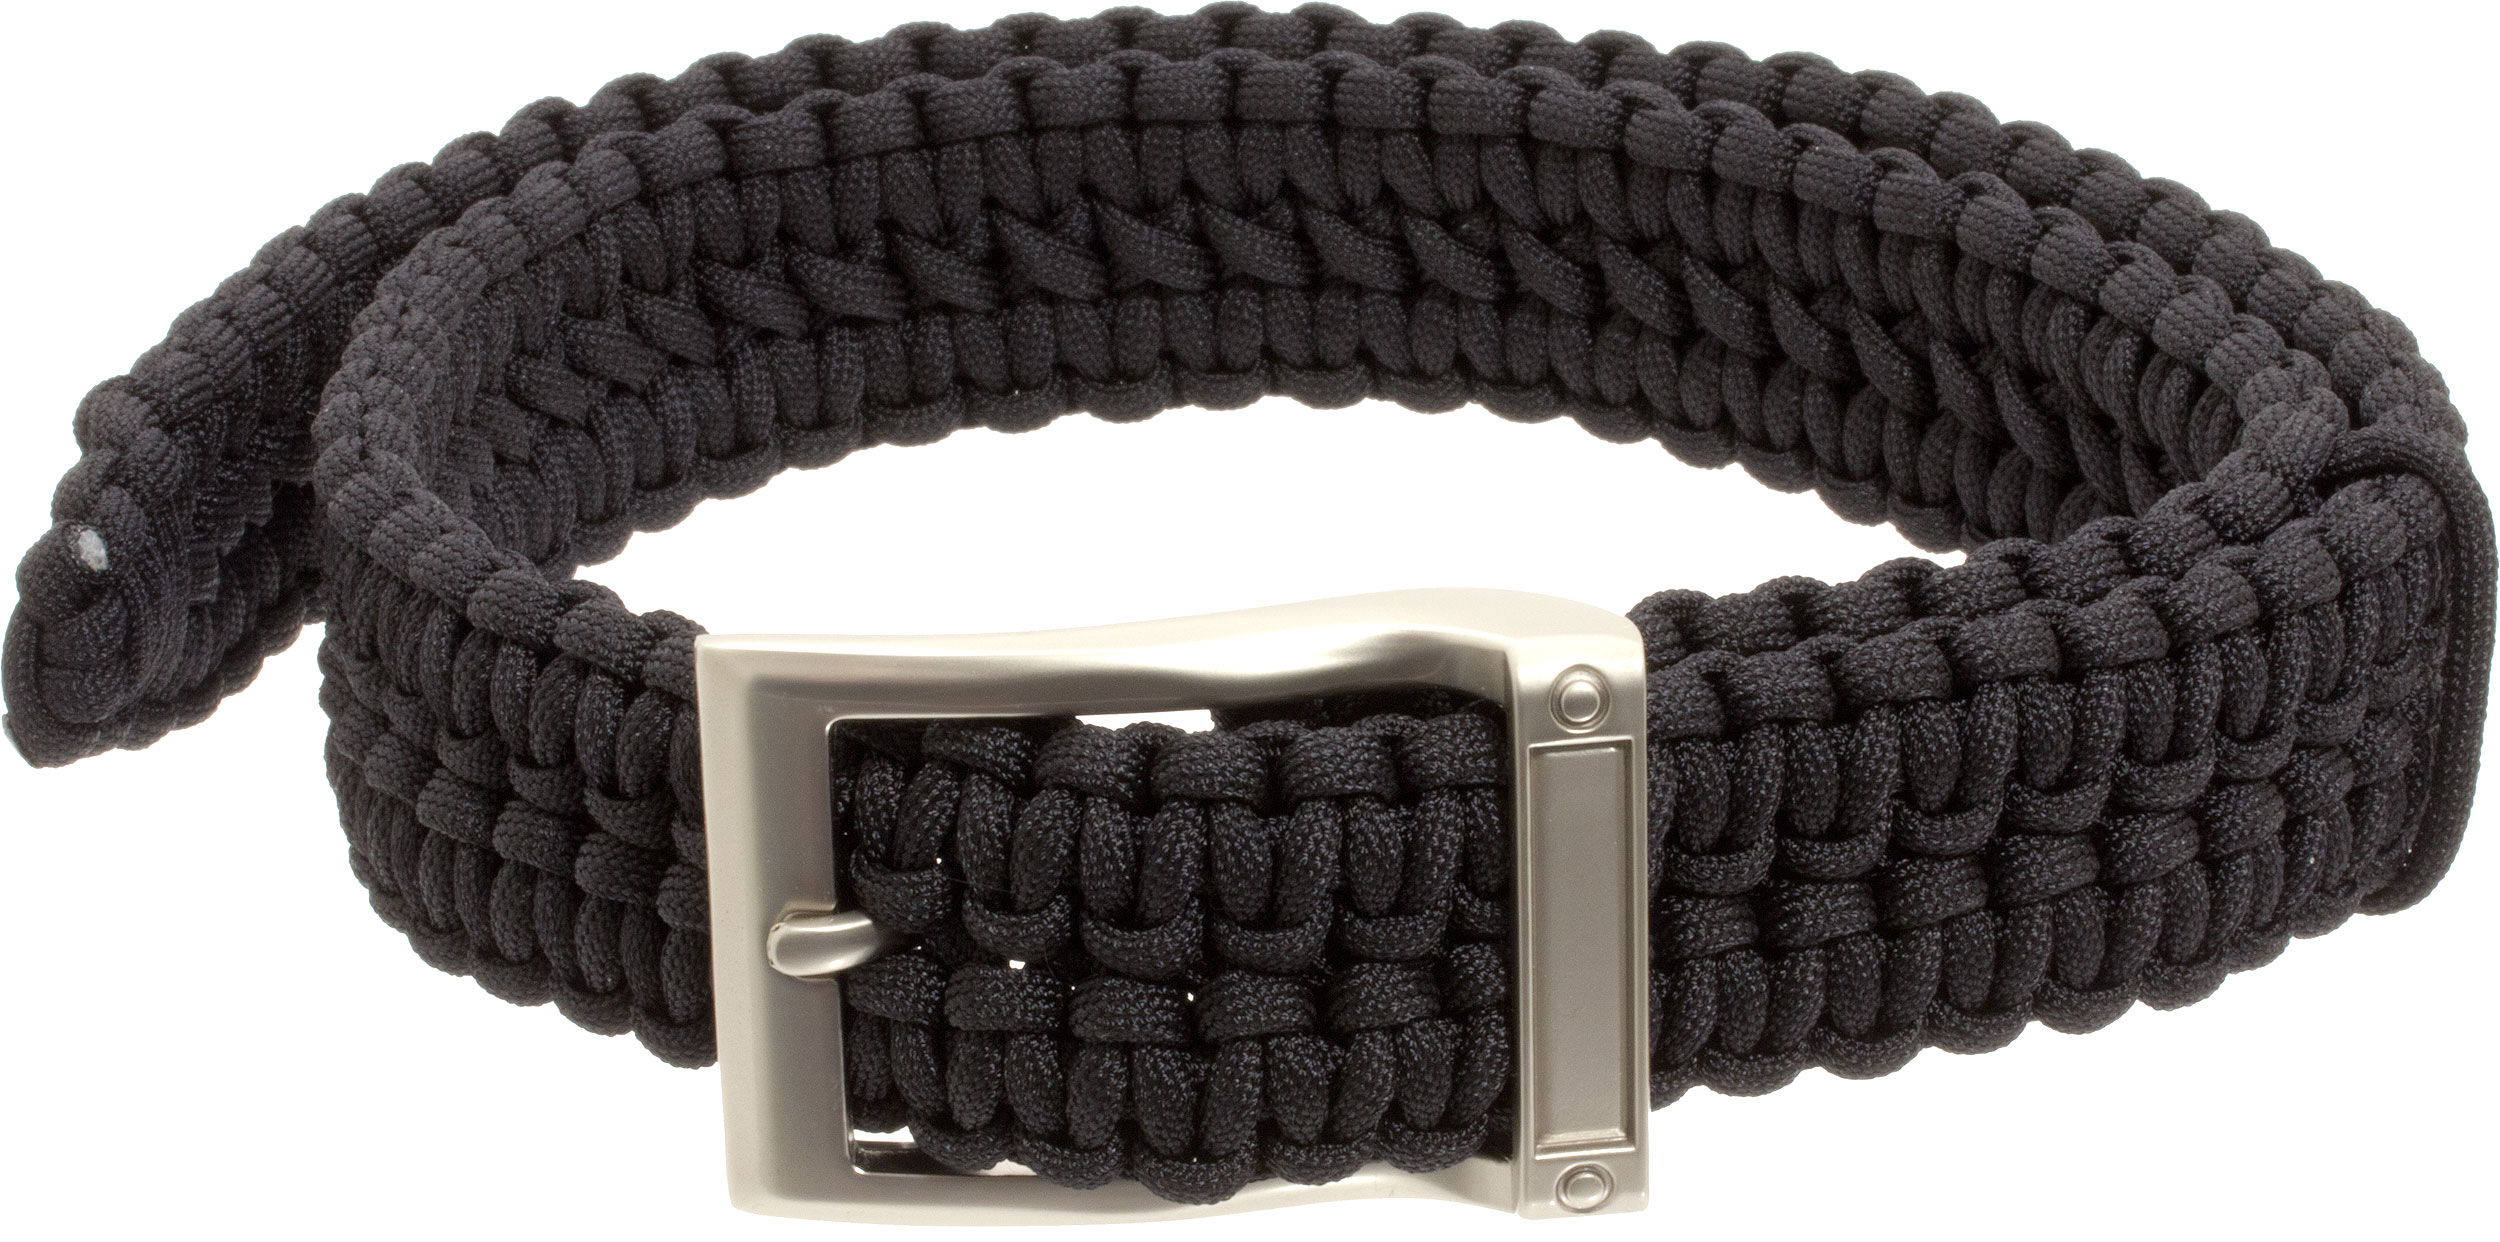 Timberline paracord survival belt black large 5103 for How to make a belt out of paracord